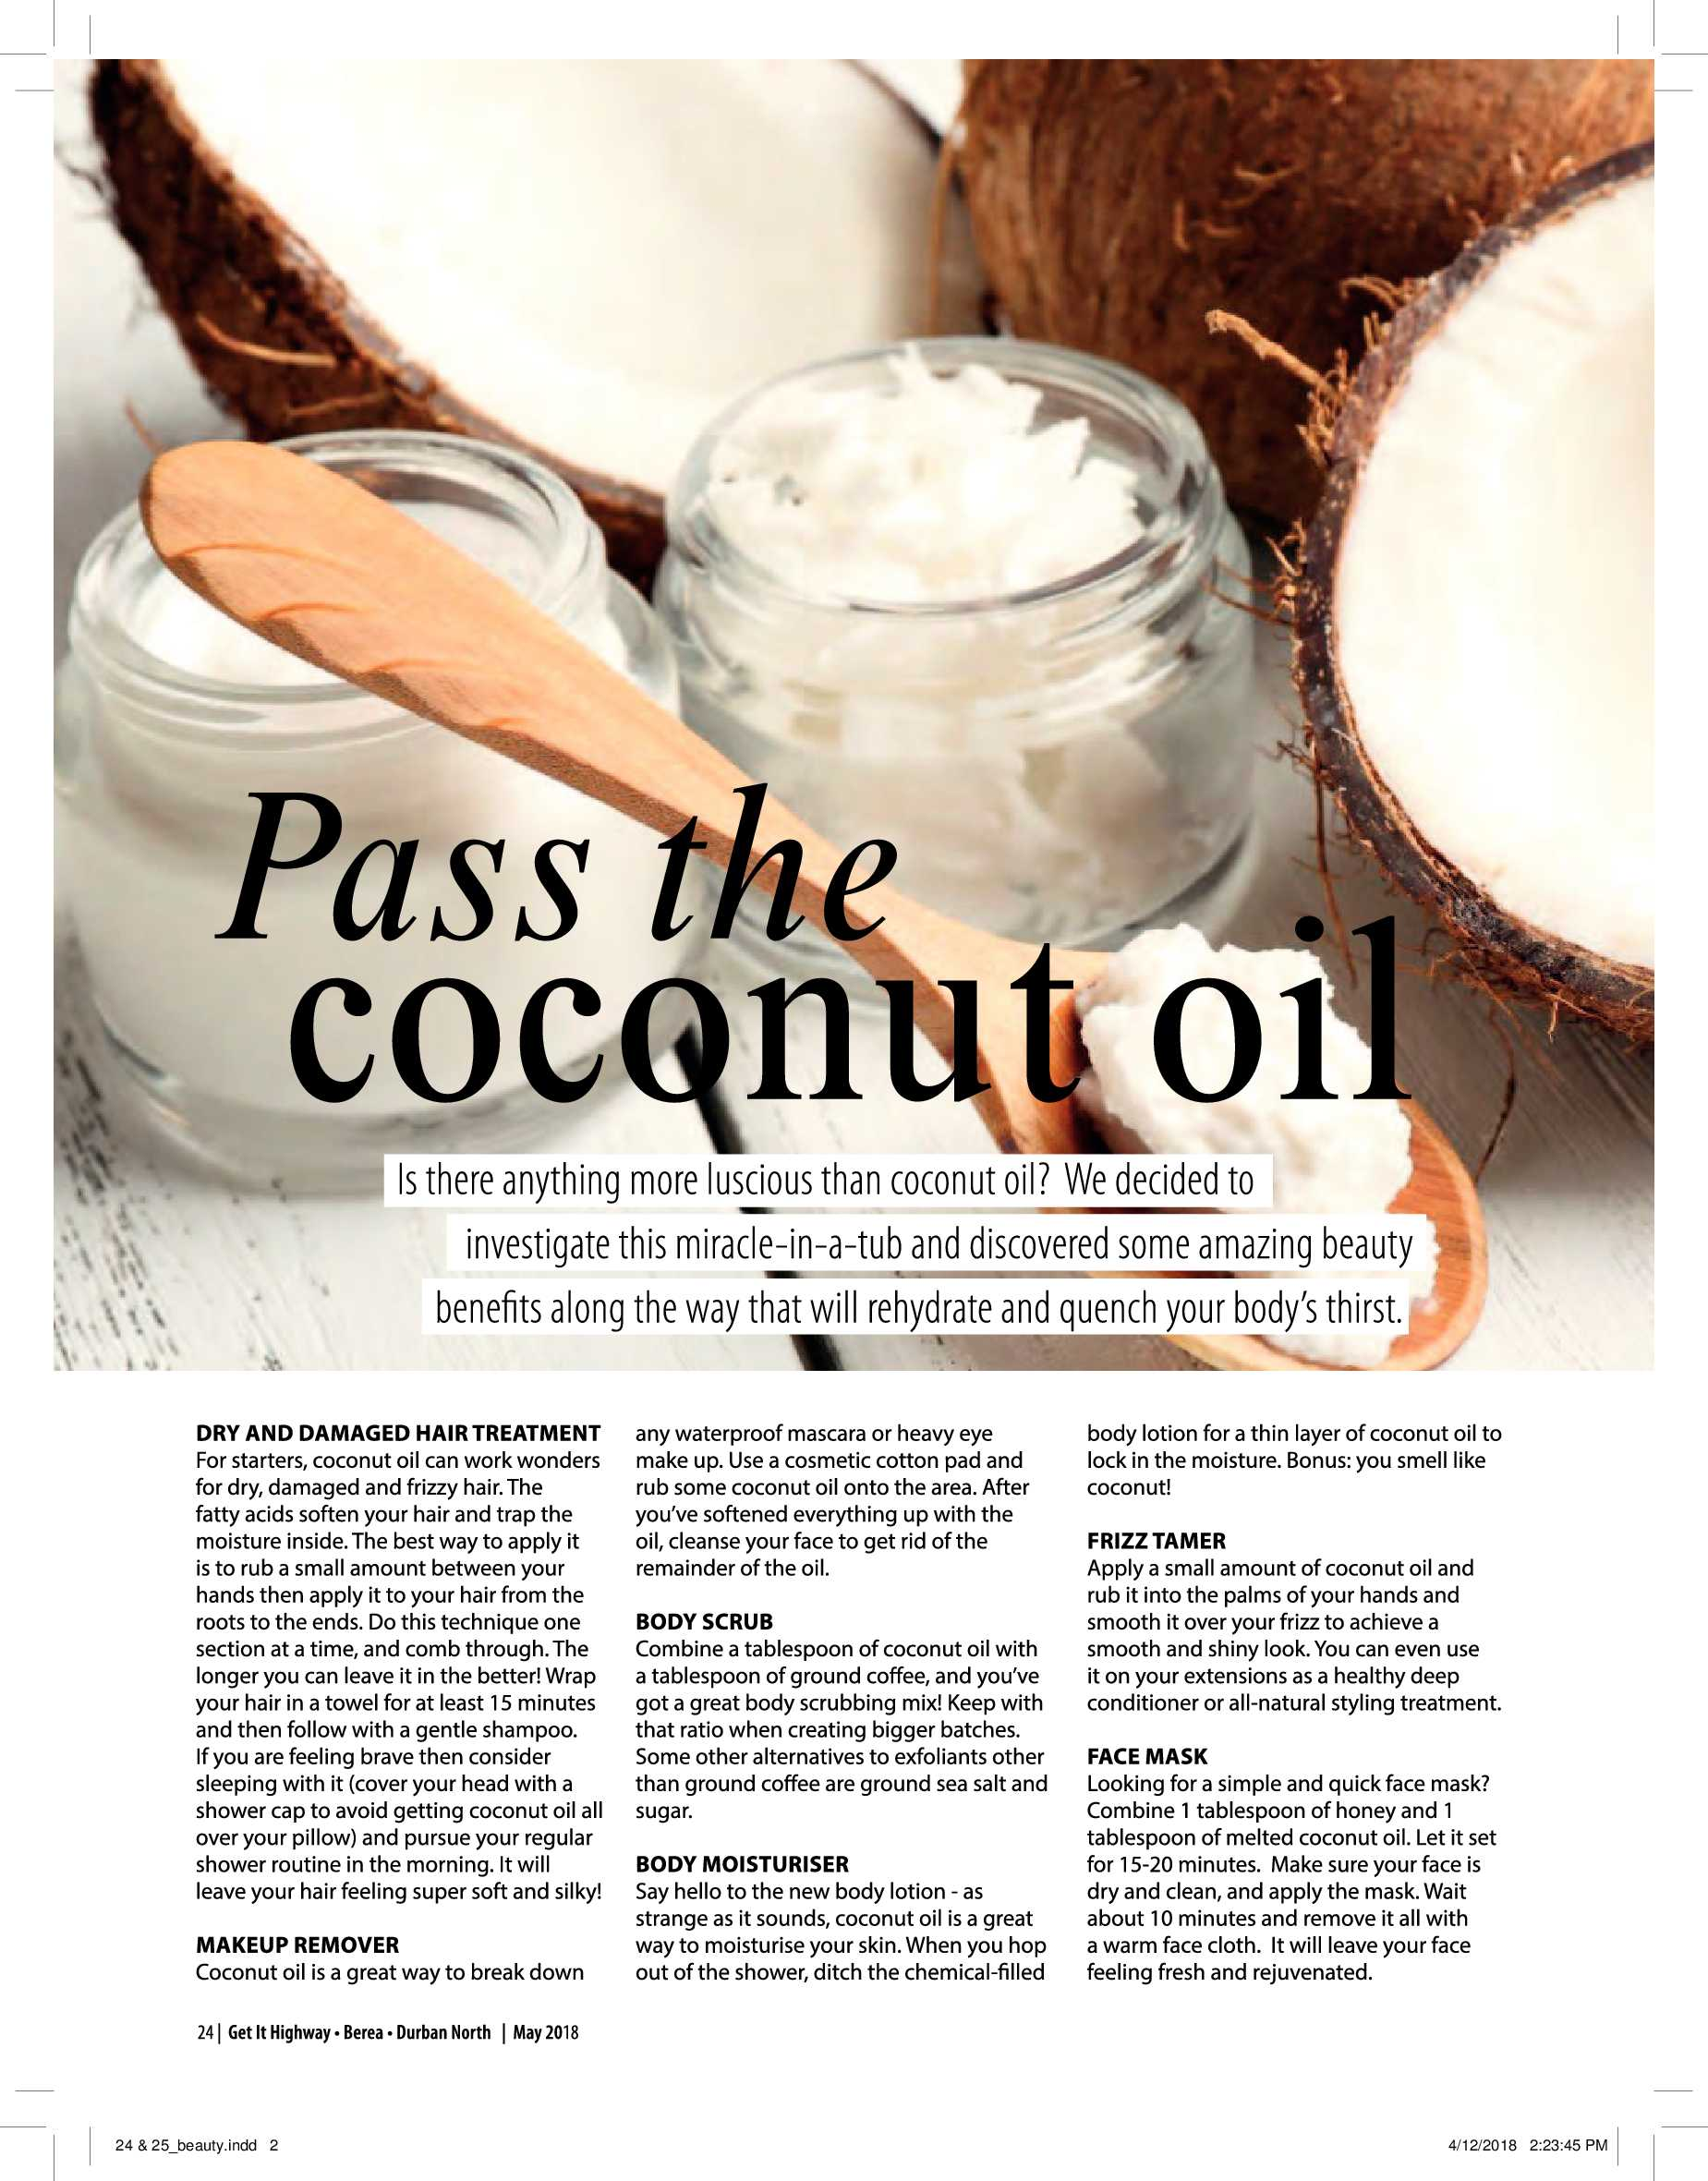 get-durban-magazine-may-2018-epapers-page-26